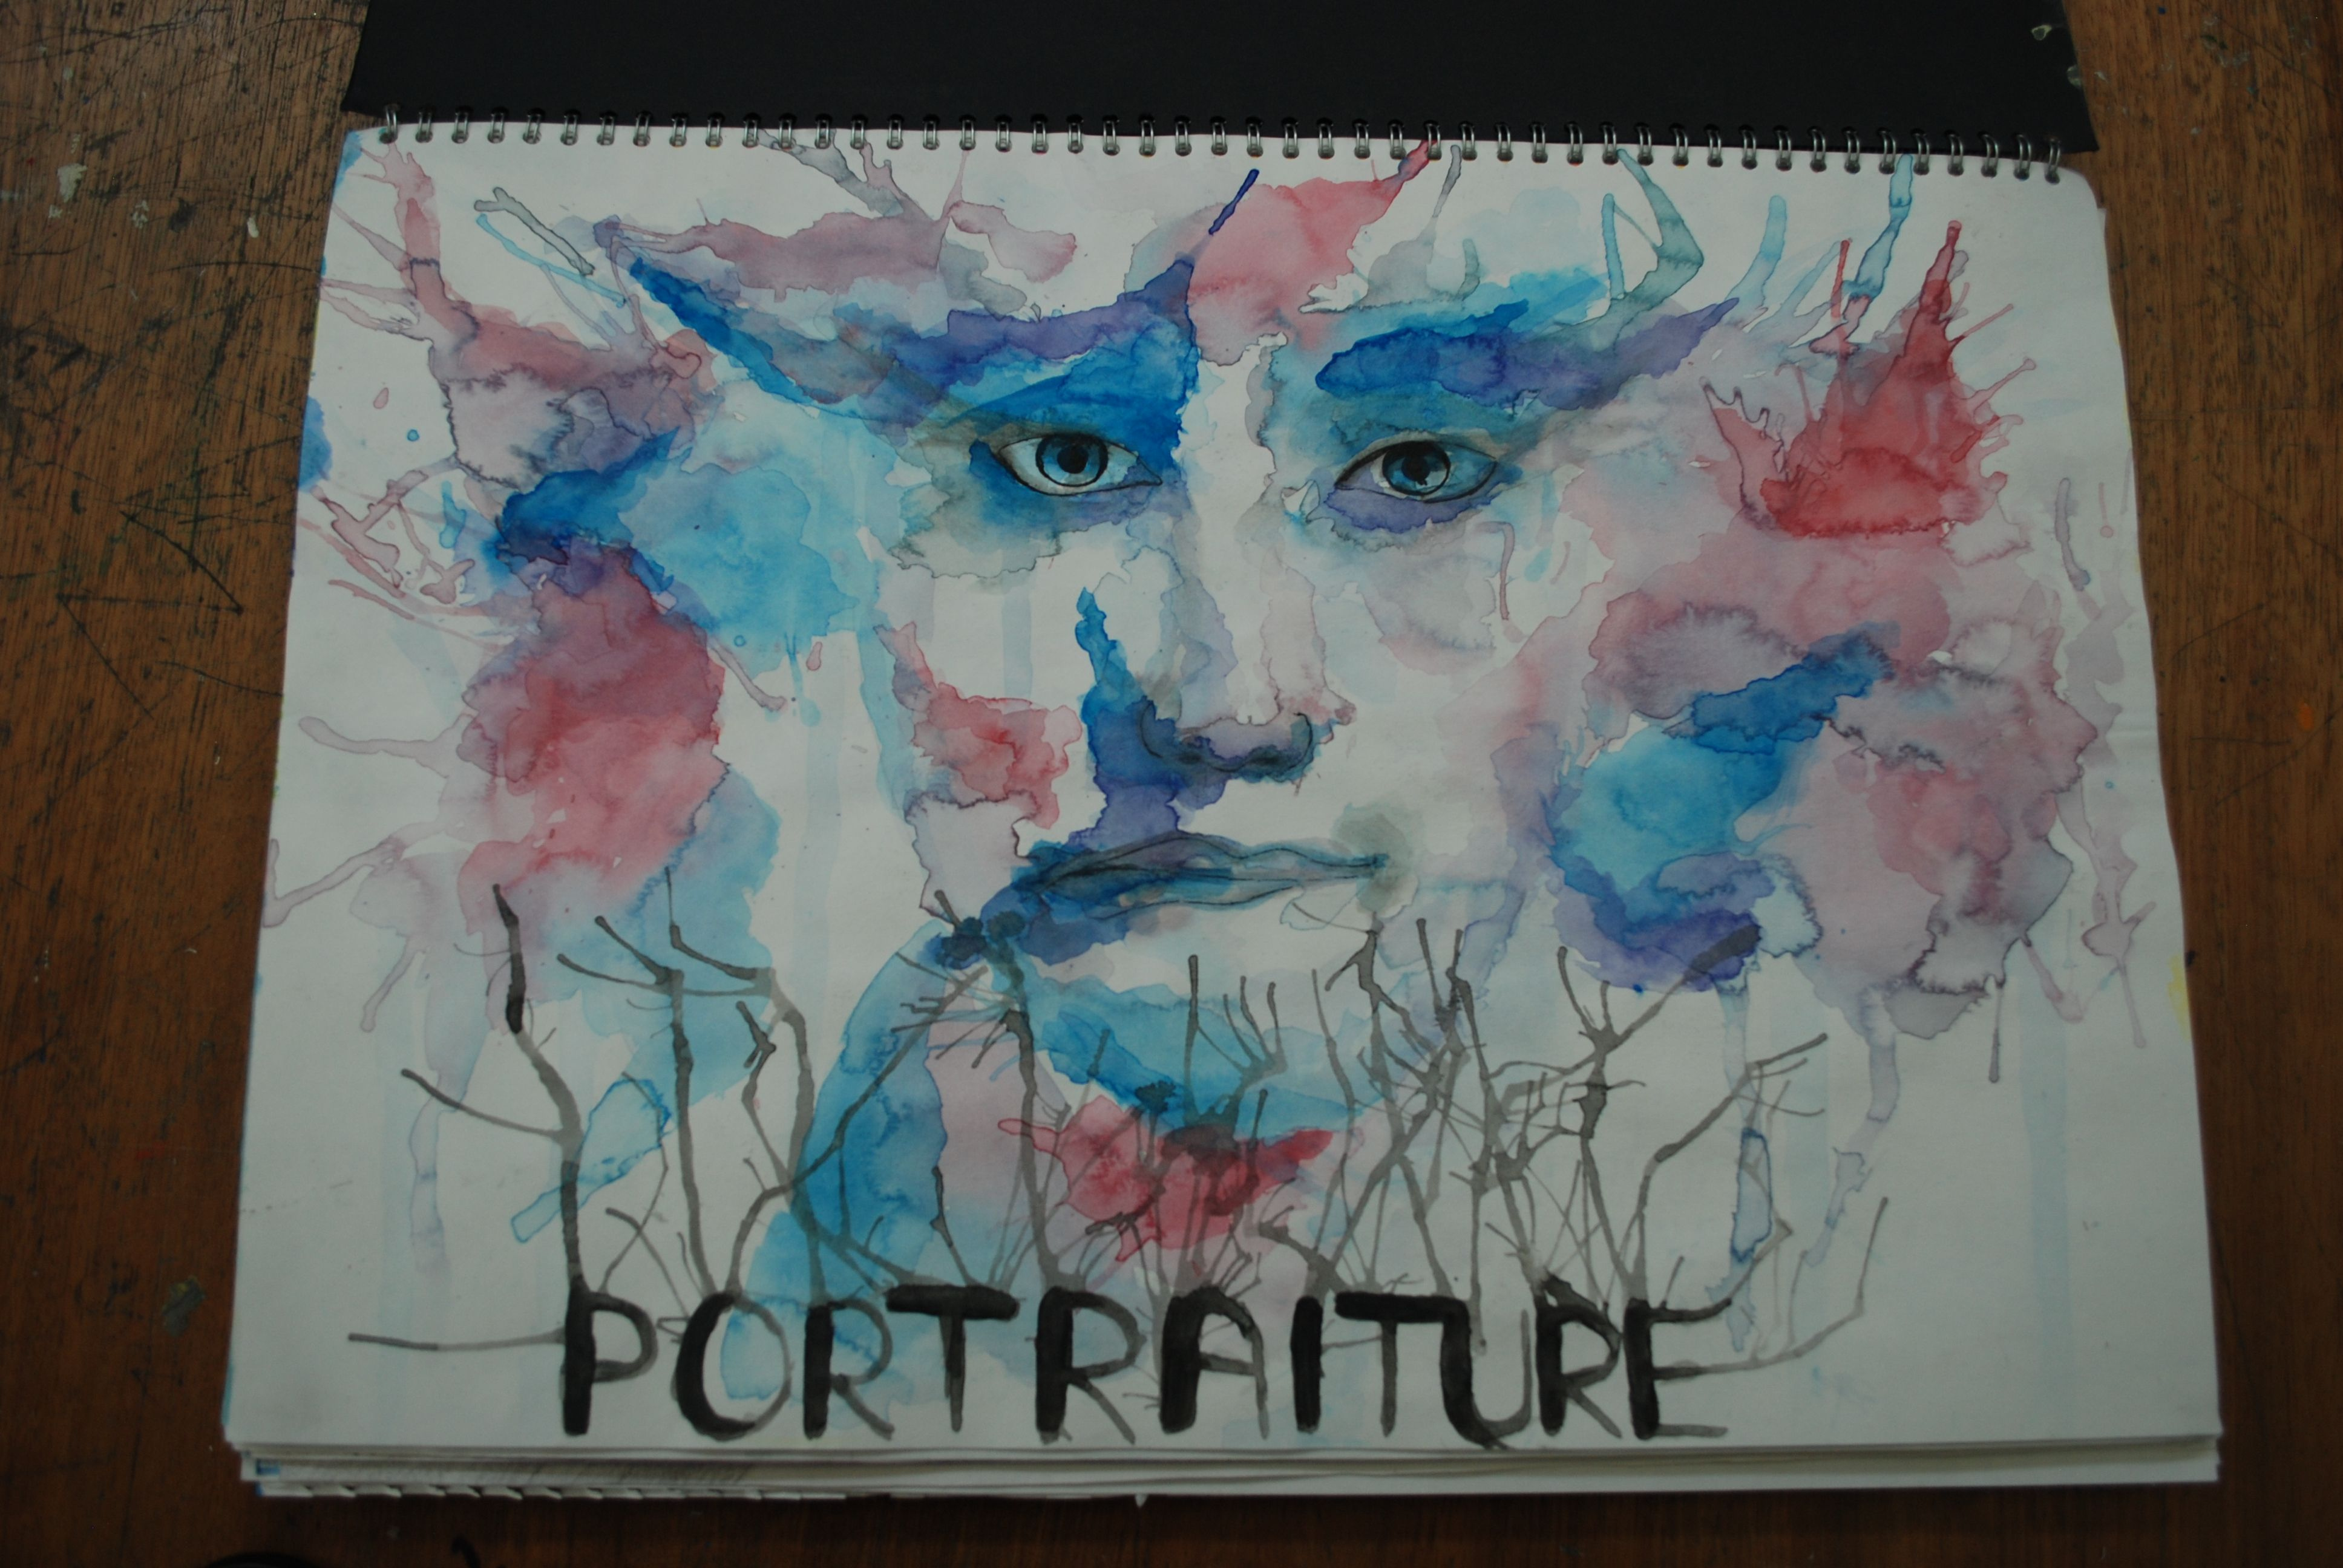 portraiture project title page using watercolour by yr student portraiture project title page using watercolour by yr9 student